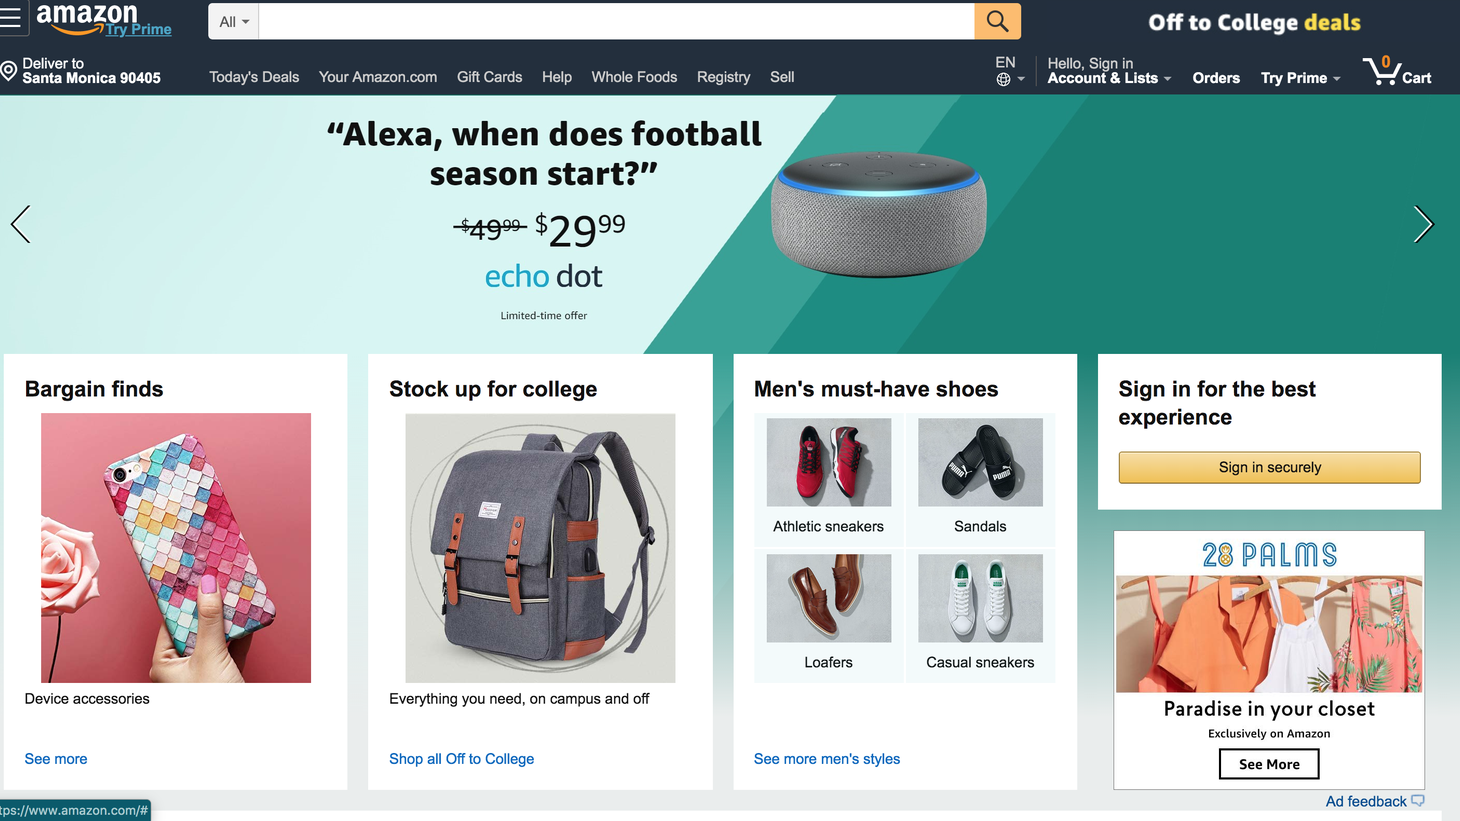 Amazon.com home page, August 26, 2019.